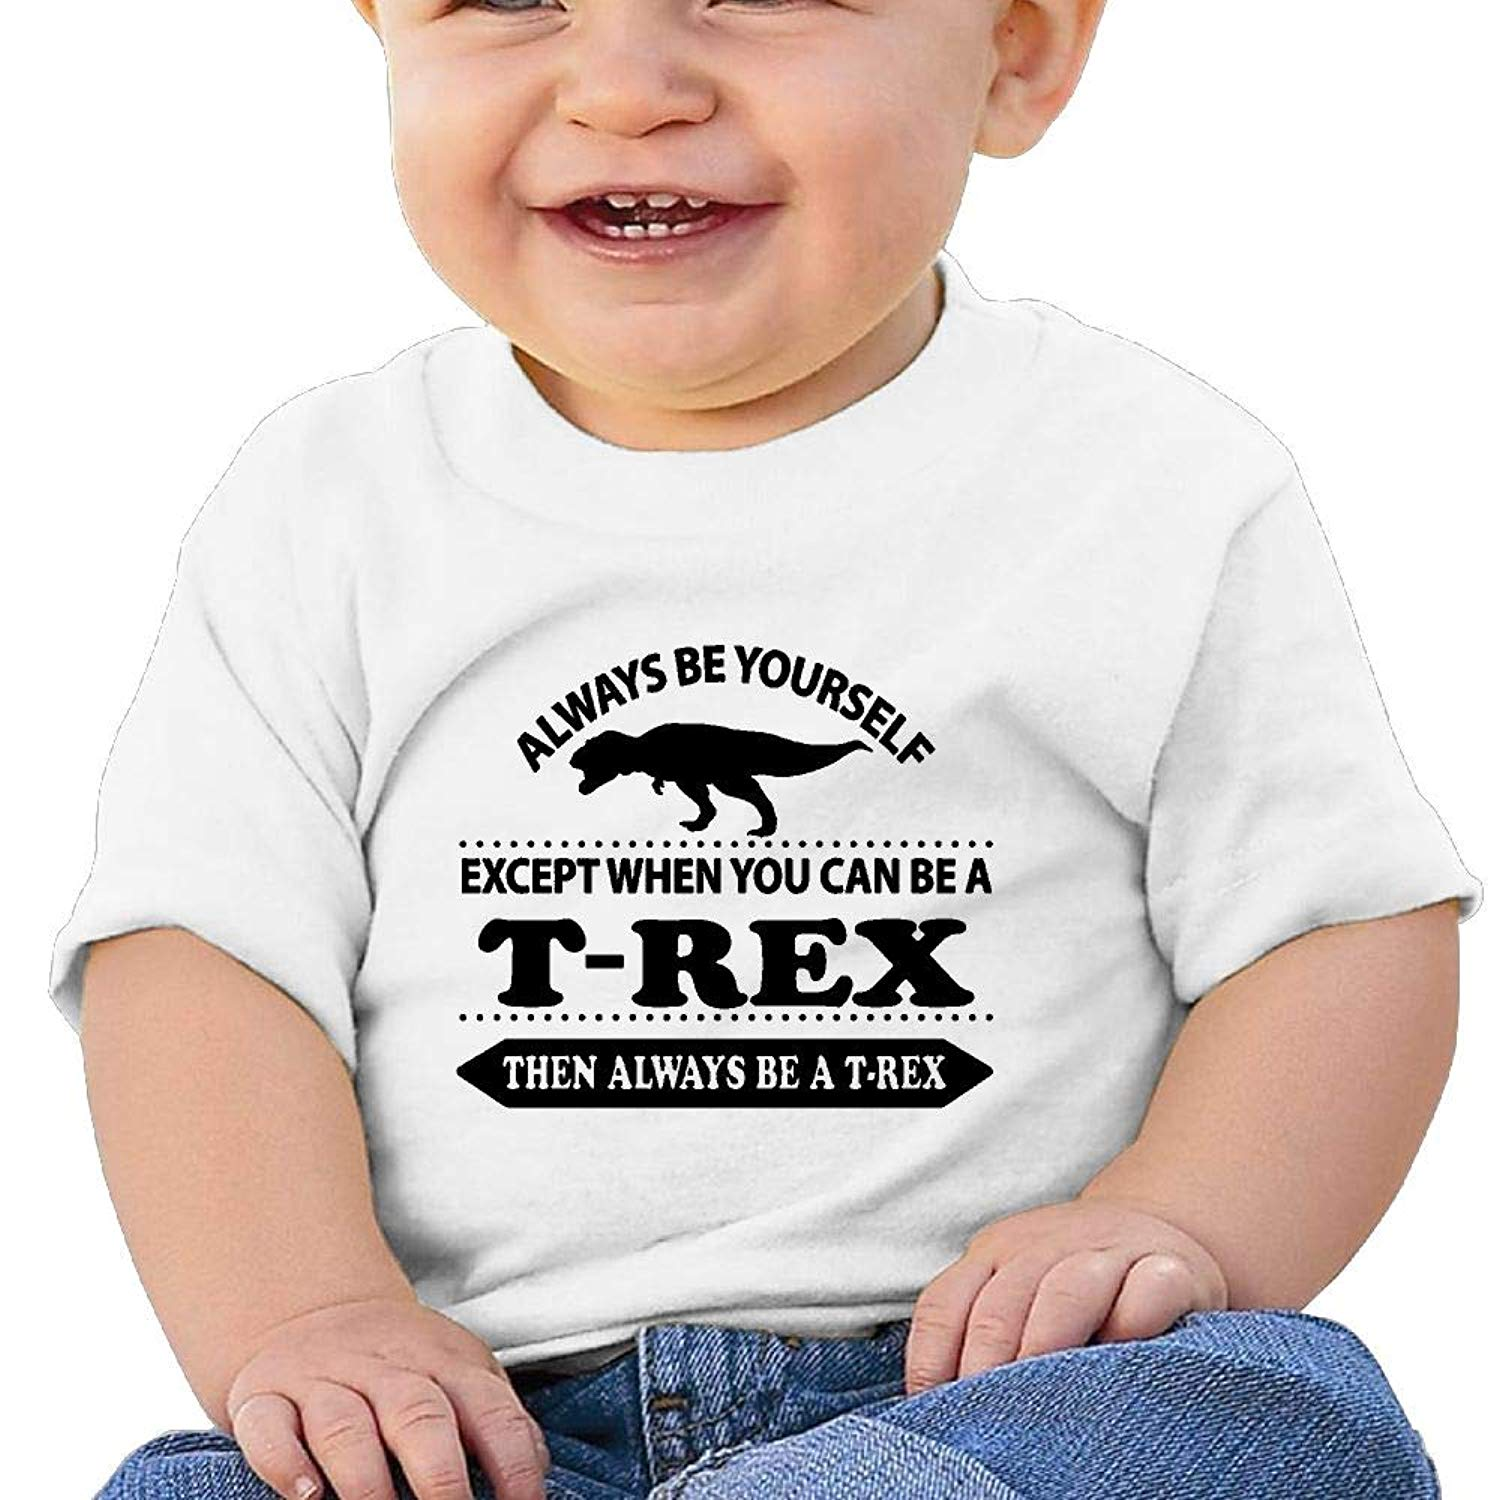 Always Be Yourself Unless You Can Be A T-Rex Short Sleeve T Shirt Tee Tops for 6-24m Baby Toddler Infant Baby Boys Girls